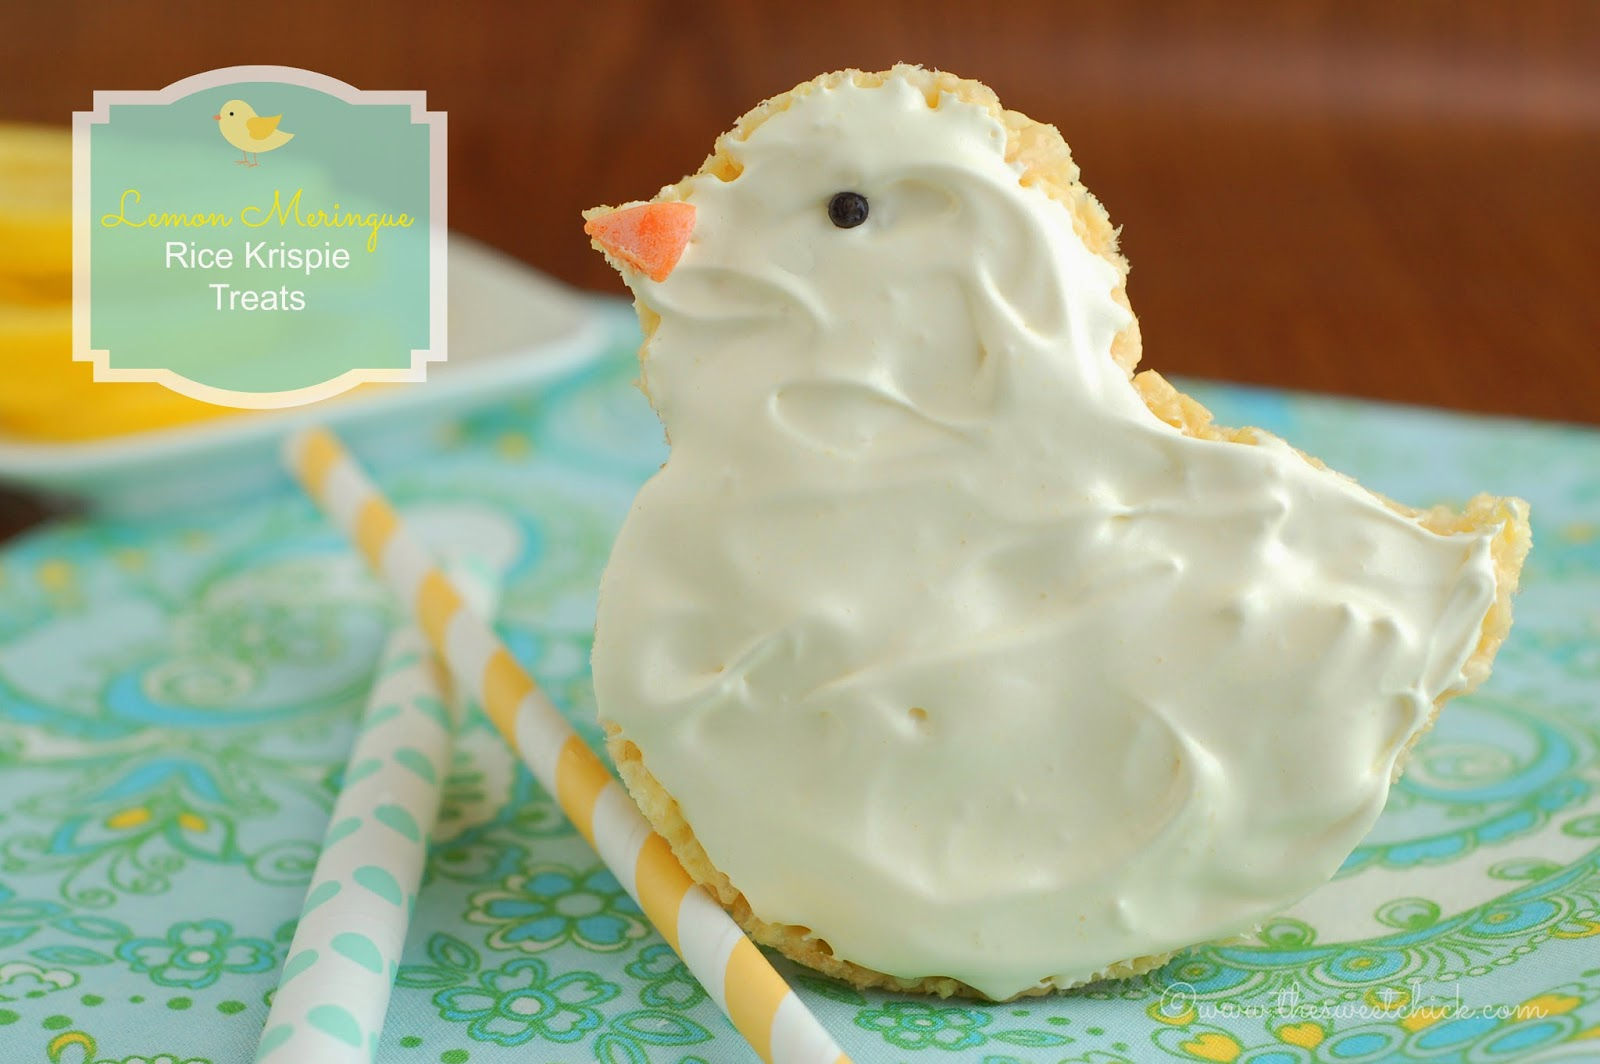 Lemon Meringue Rice Krispie Chick by The Sweet Chick